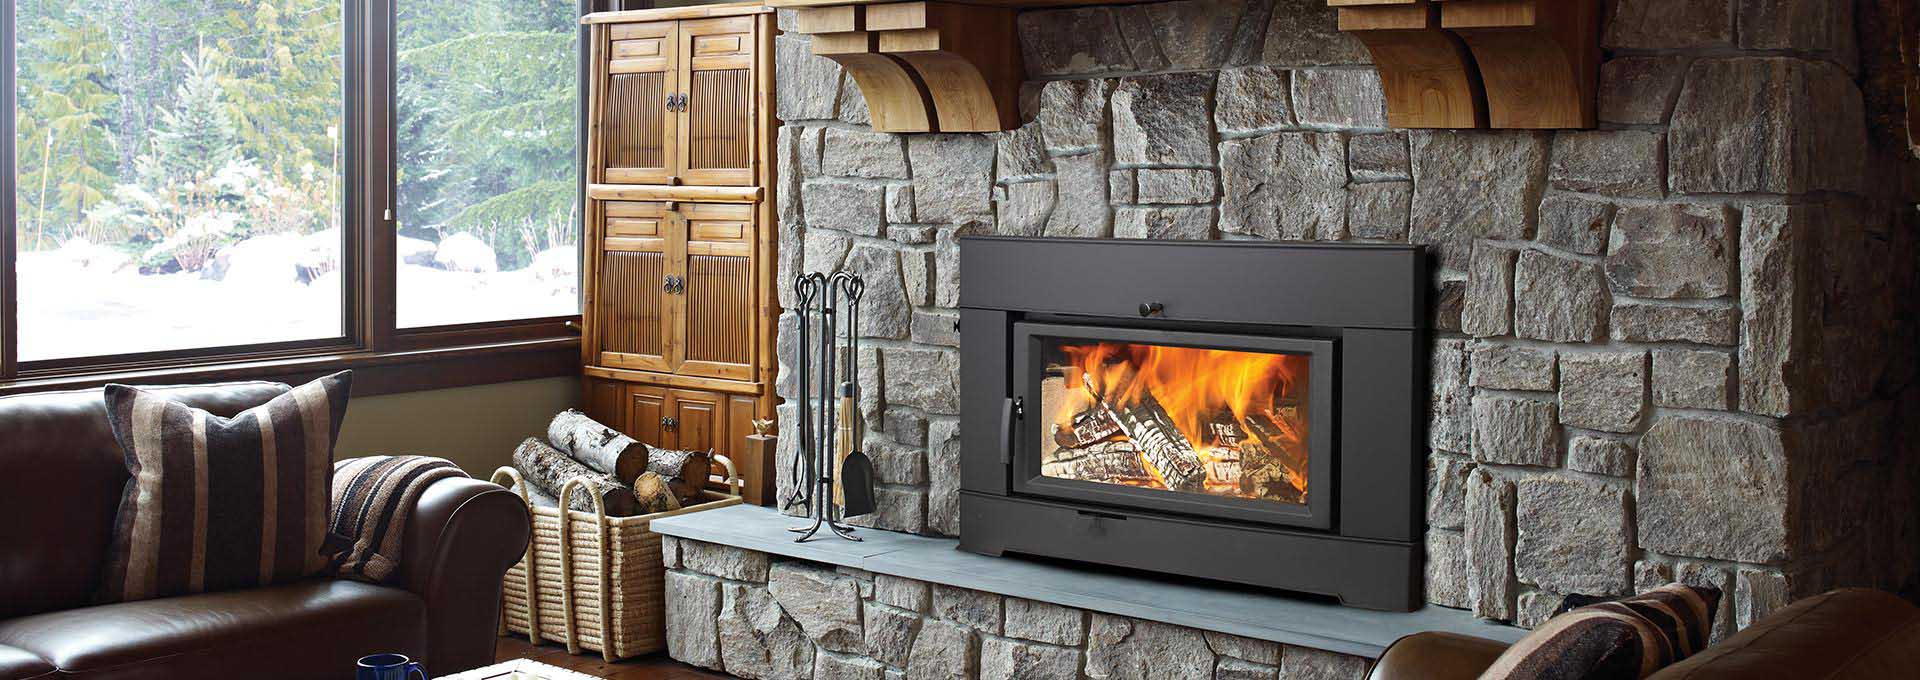 How To Operate A Fireplace Wood Or Pellet This Is How To Choose